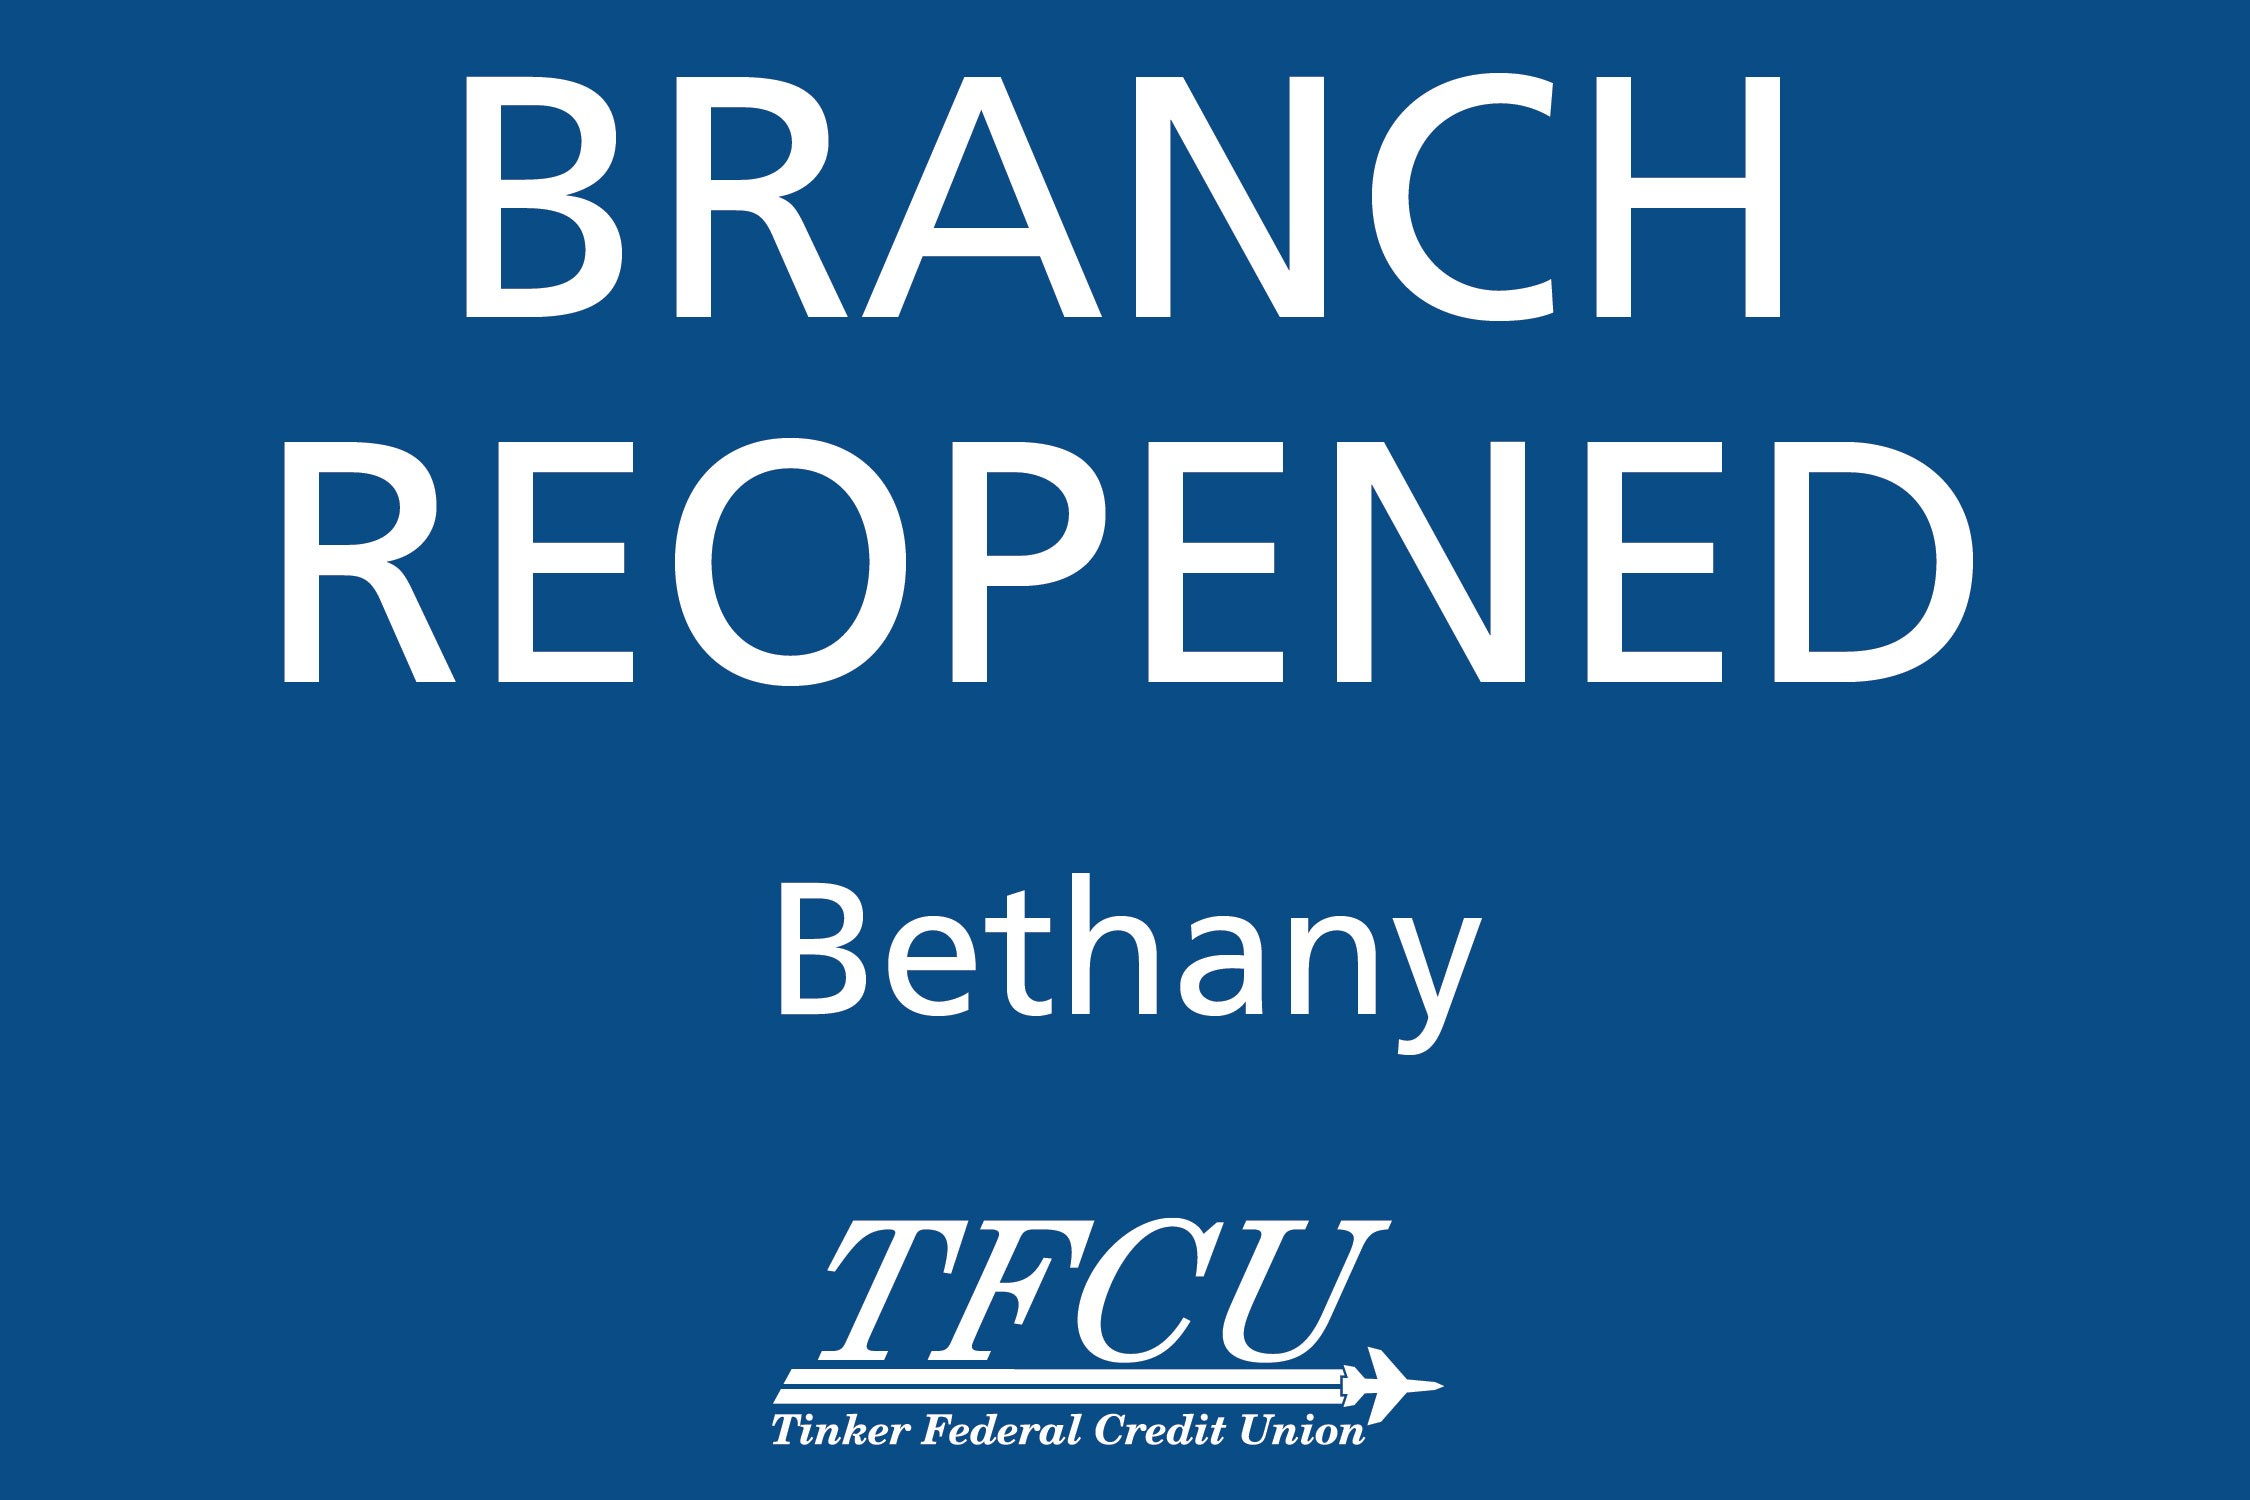 Bethany Branch Reopened